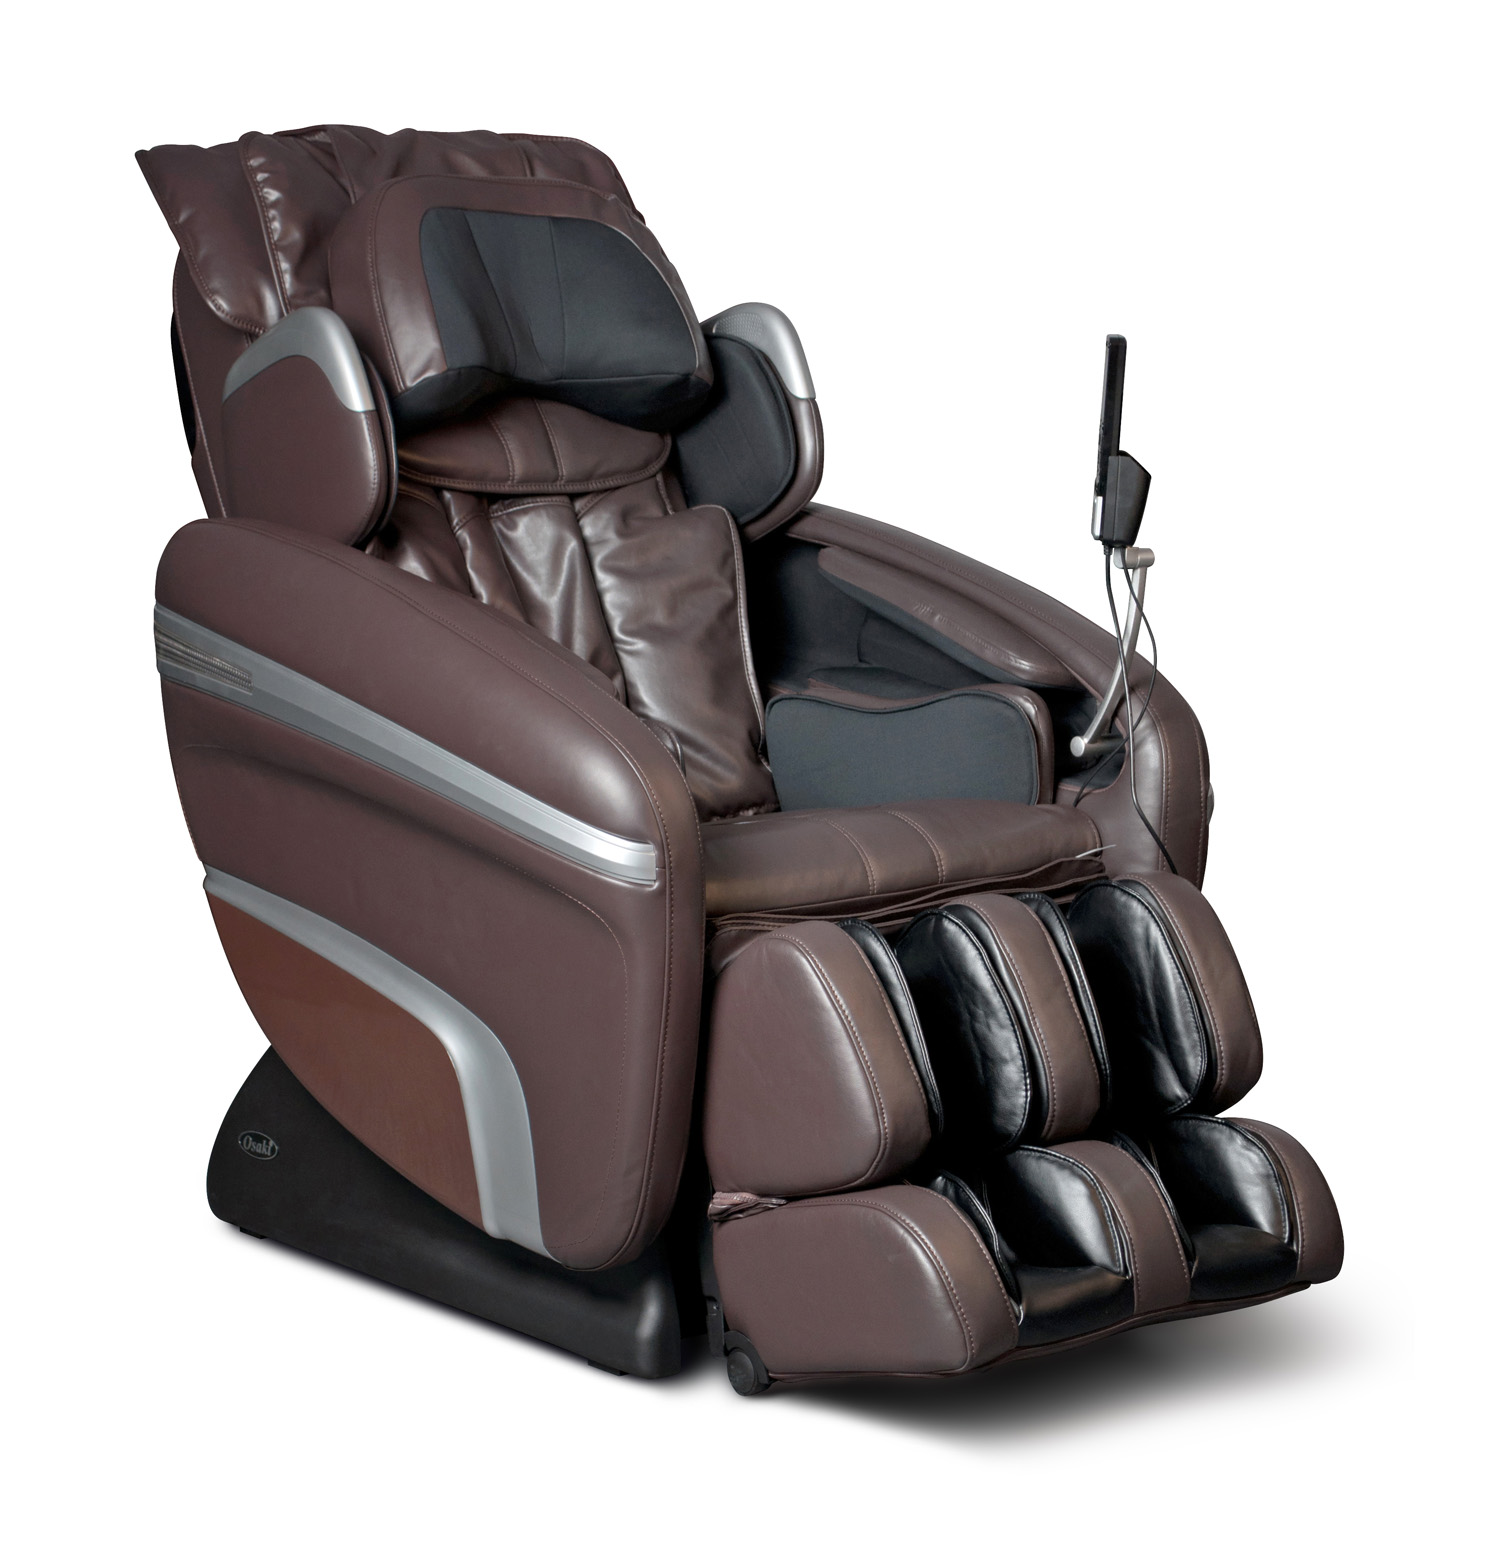 Massage chair introduces the osaki os 6000 for Chair massage